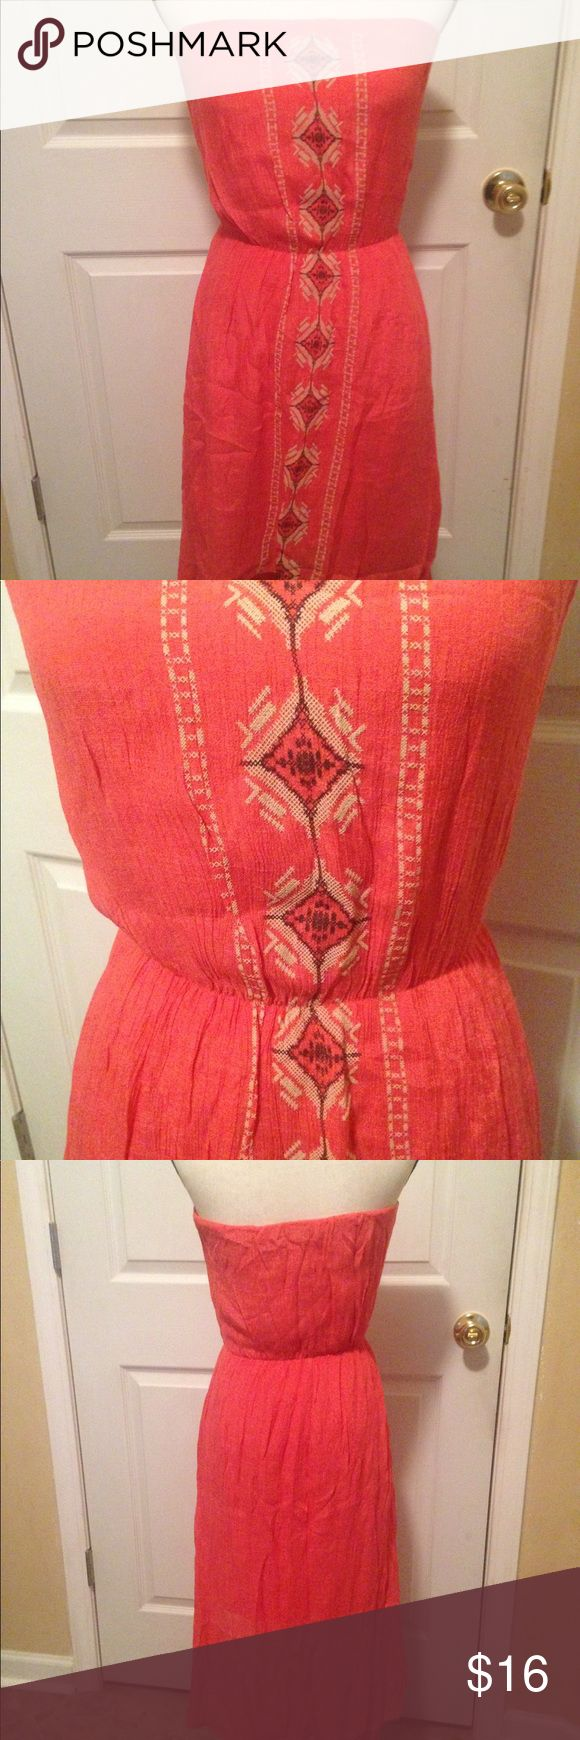 Brand Unknown pink gypsy coachella dress The tag on the inside is missing, so im not sure what brand this is :( It's in perfect condition and its a beautiful dress. Measurements: (the material is stretchy) Bust- 14 inches from underarm to underarm Waist- 24 inches  Length in the front- 27.5 inches Length in the back- 38.5 inches Dresses High Low